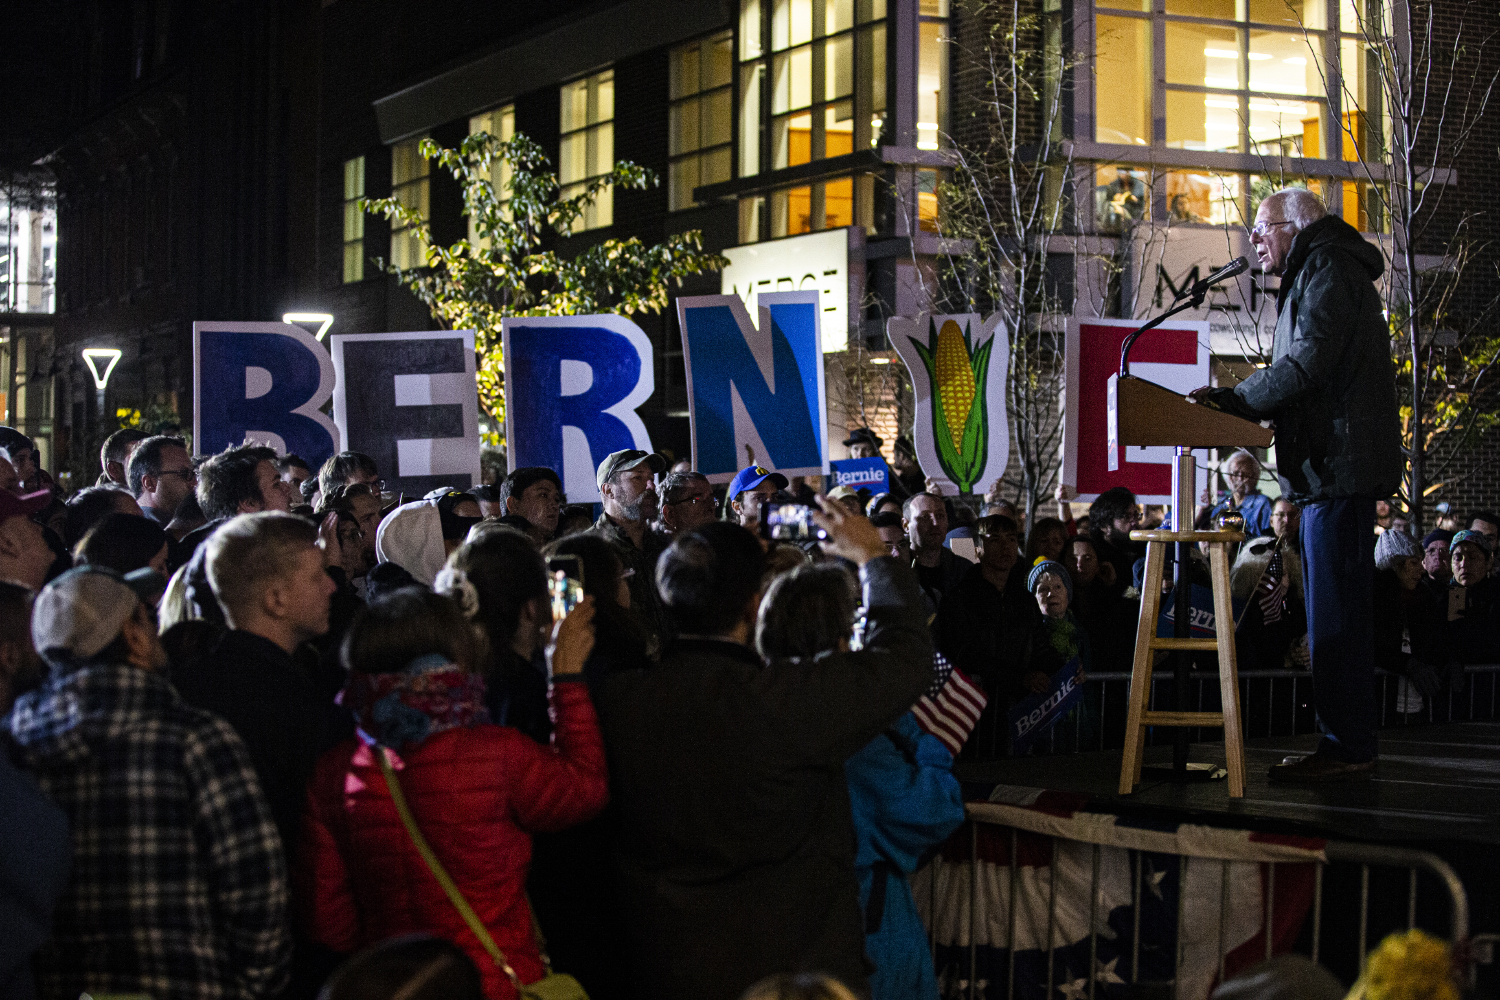 Bernie Sanders speaks before citizens at a rally in downtown Iowa City on Friday, October 25th, 2019. Bernie Sanders made an appearance downtown to drum up support for the upcoming Presidential Caucus. (Tate Hildyard/The Daily Iowan)